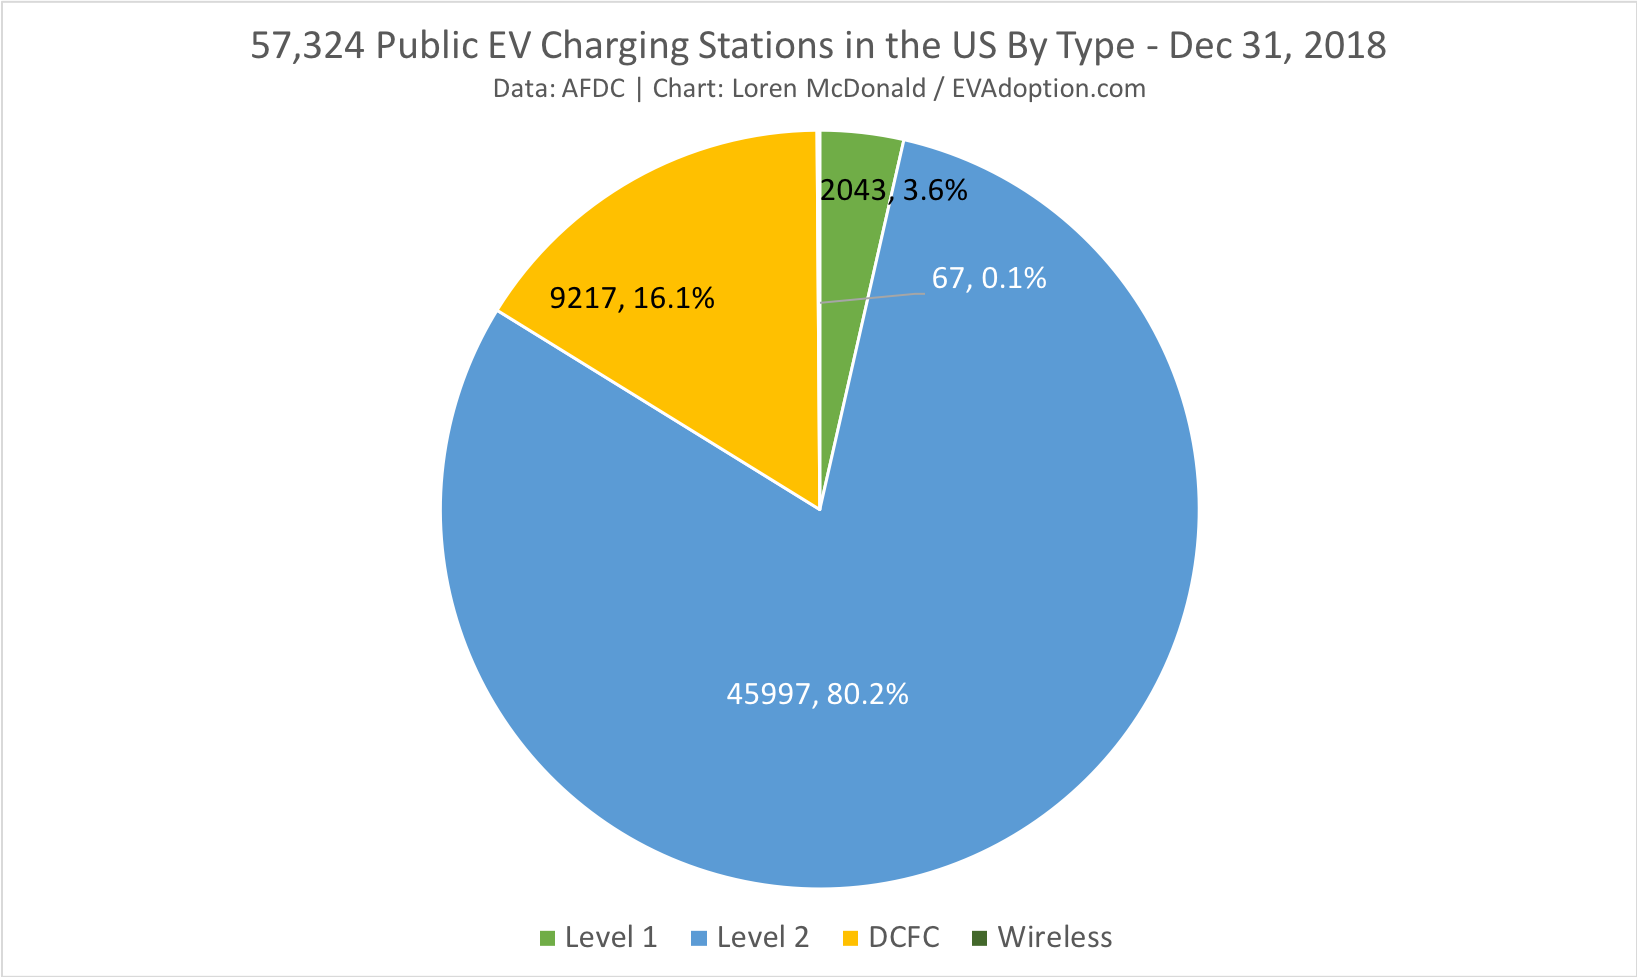 Public EV Charging stations as of Dec 31 2018